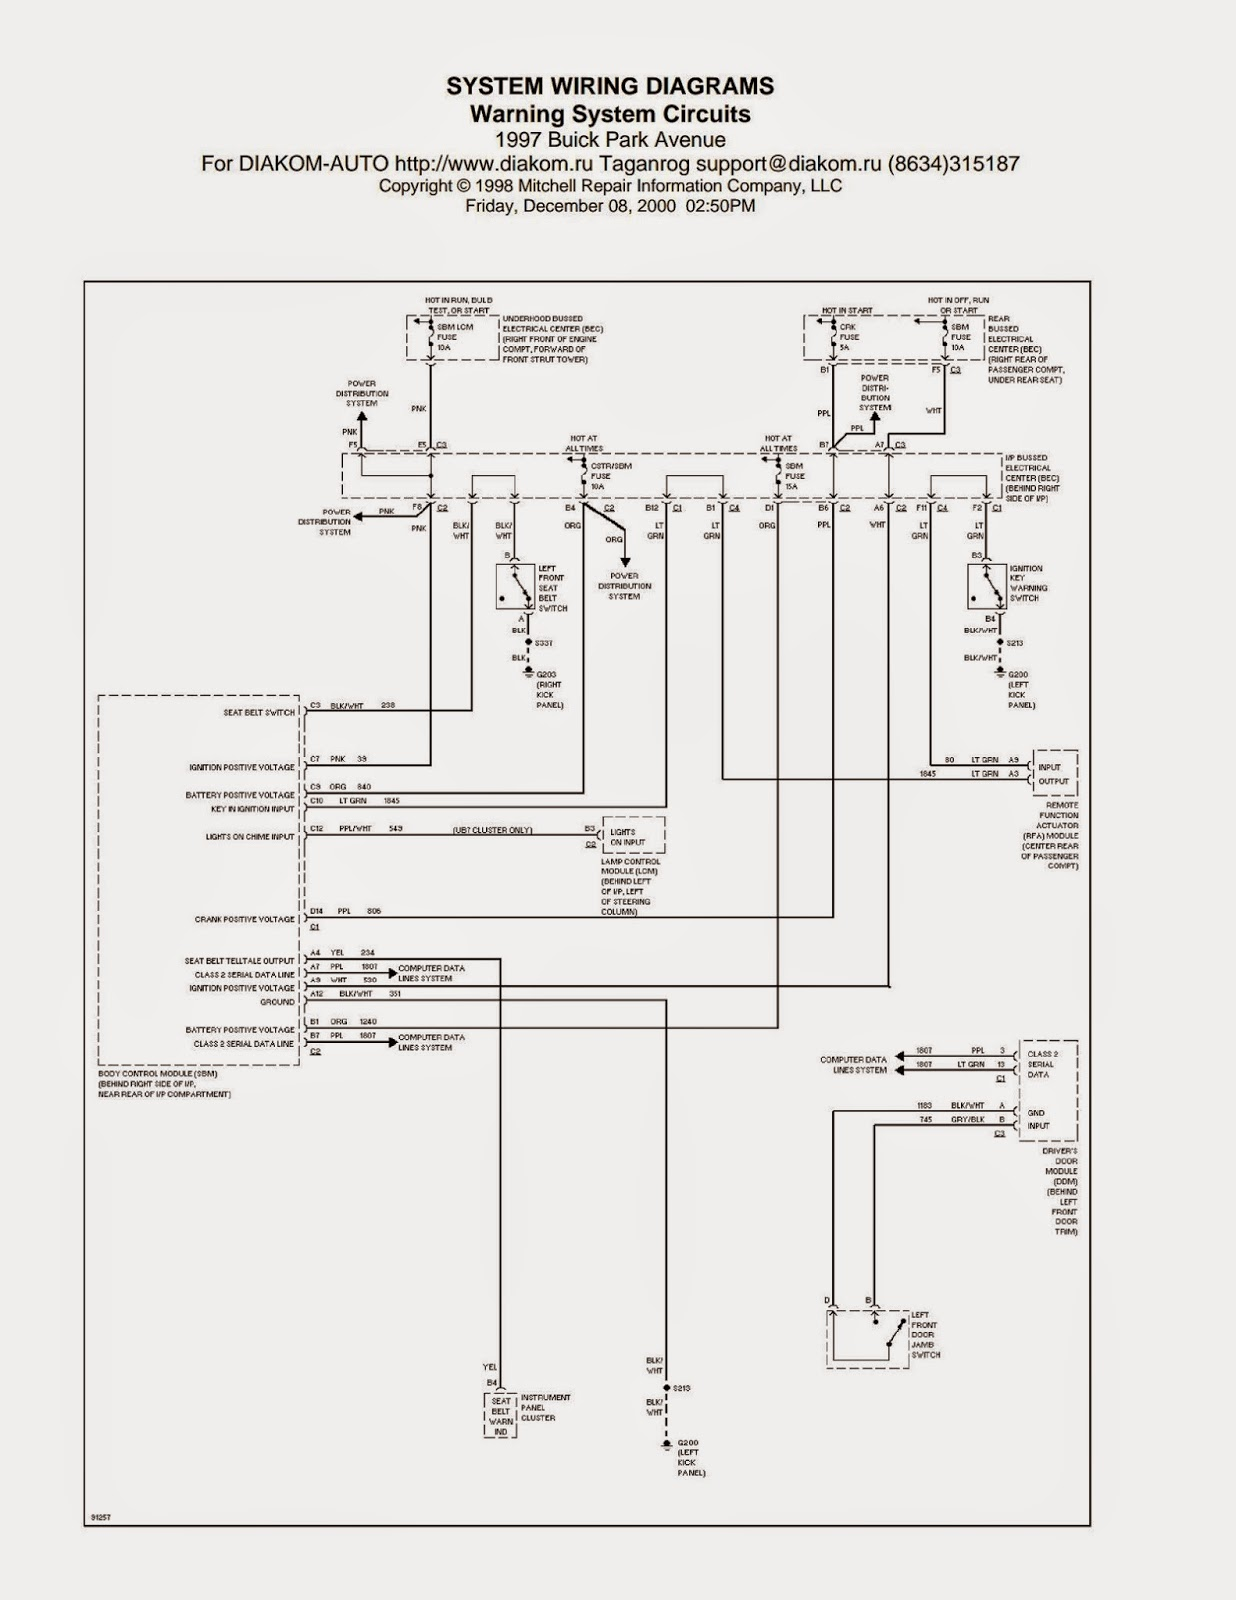 Wiring Diagrams and Free Manual Ebooks: 1997 Buick Park